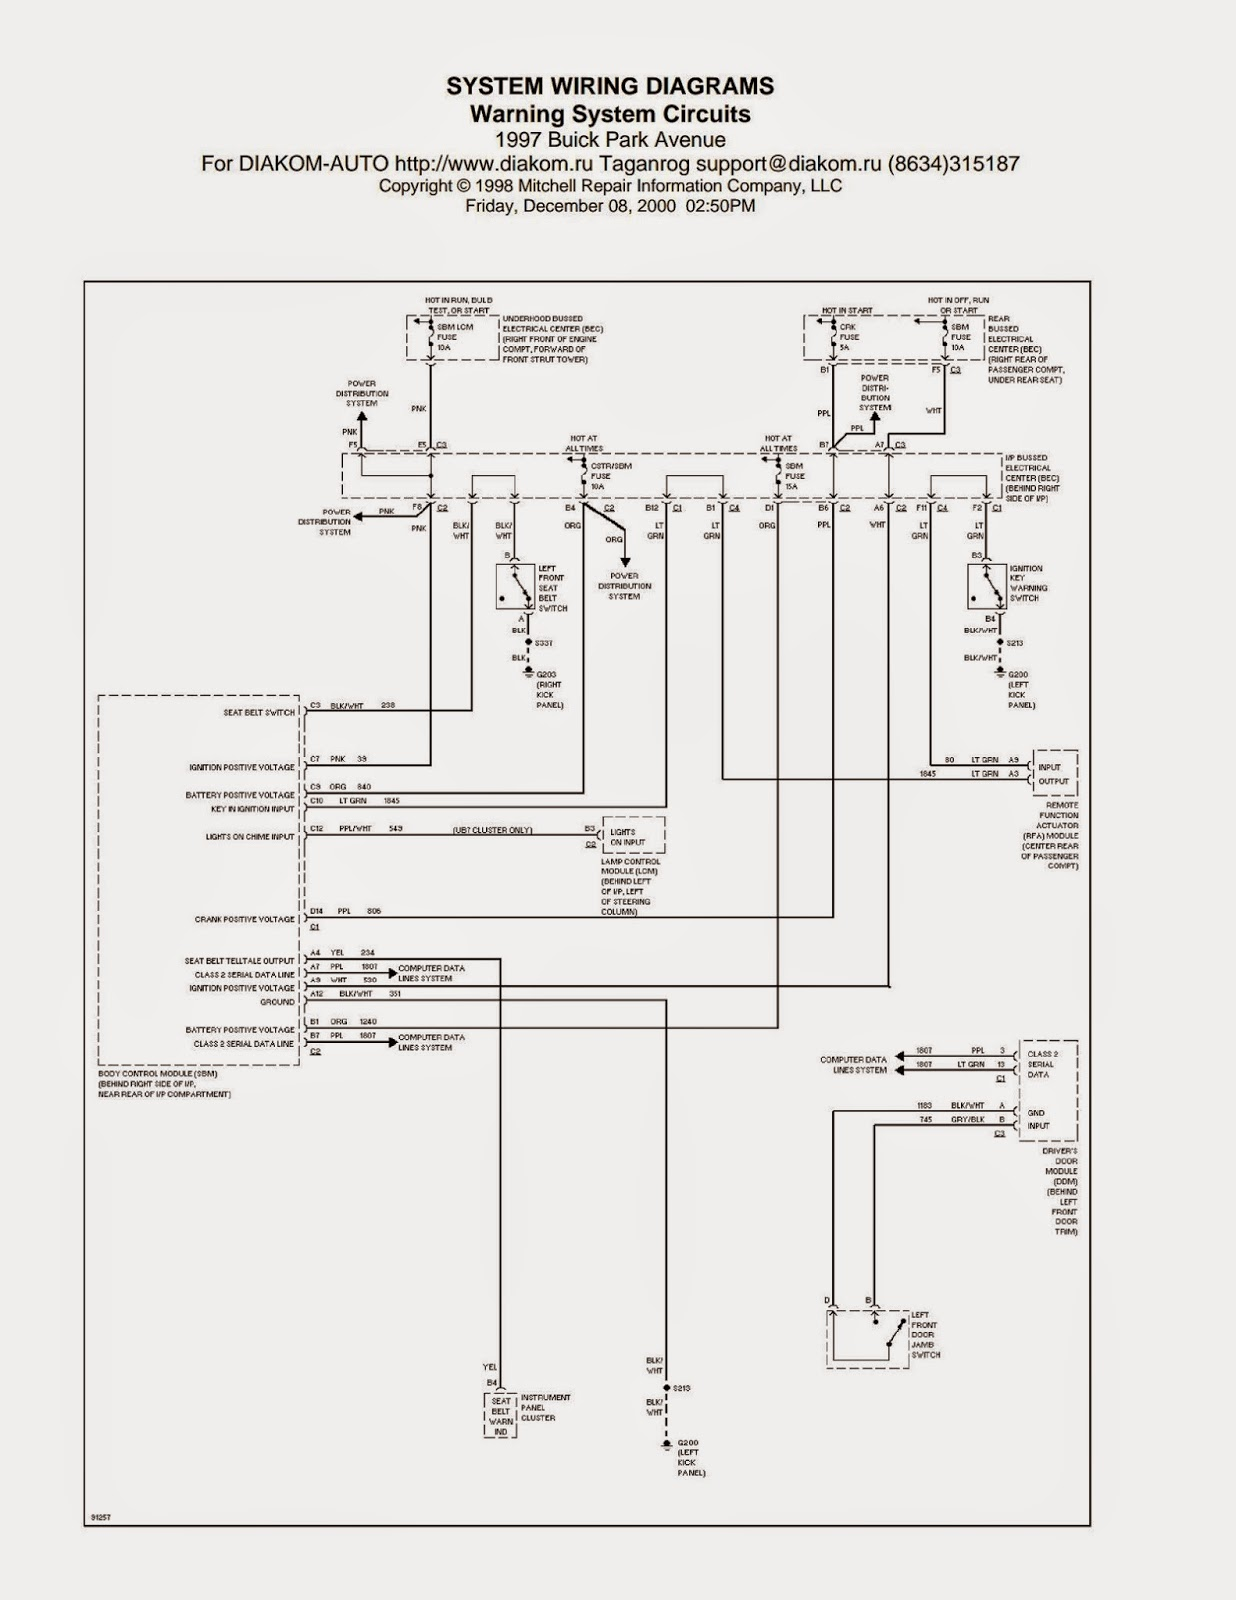 Wiring Diagrams and Free Manual Ebooks: 1997 Buick Park